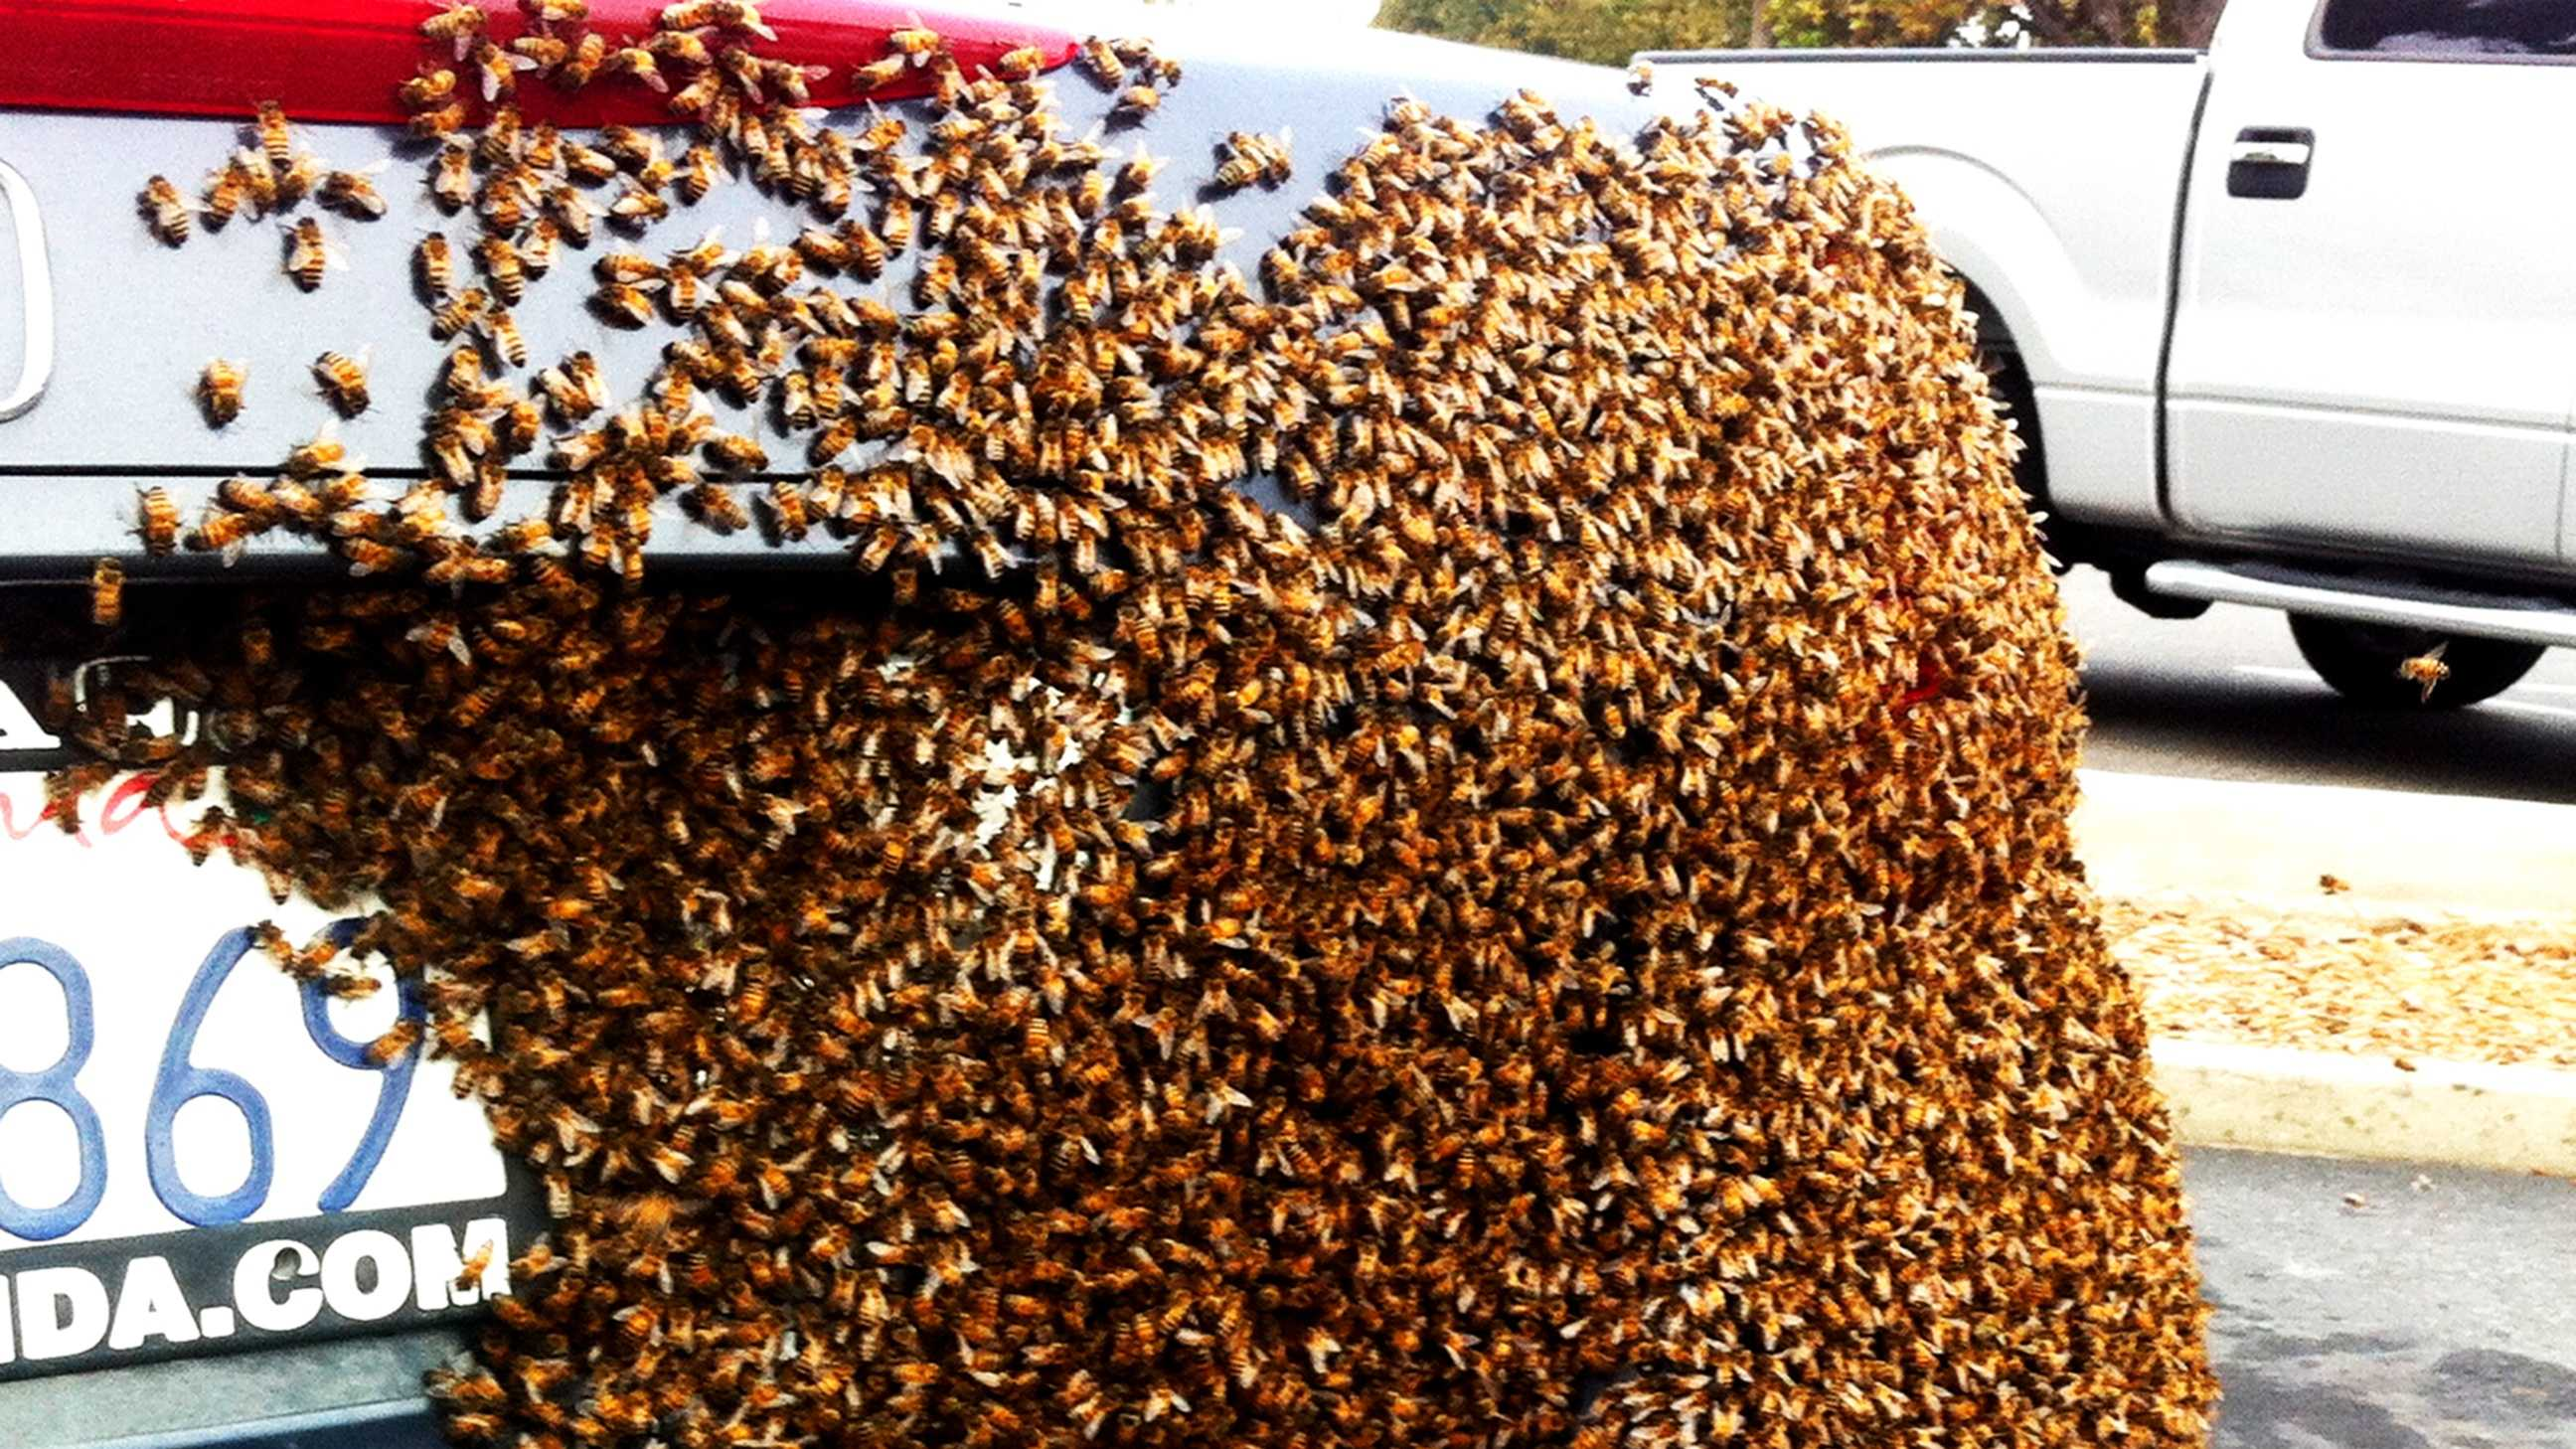 A swarm of bees clusters on a car.